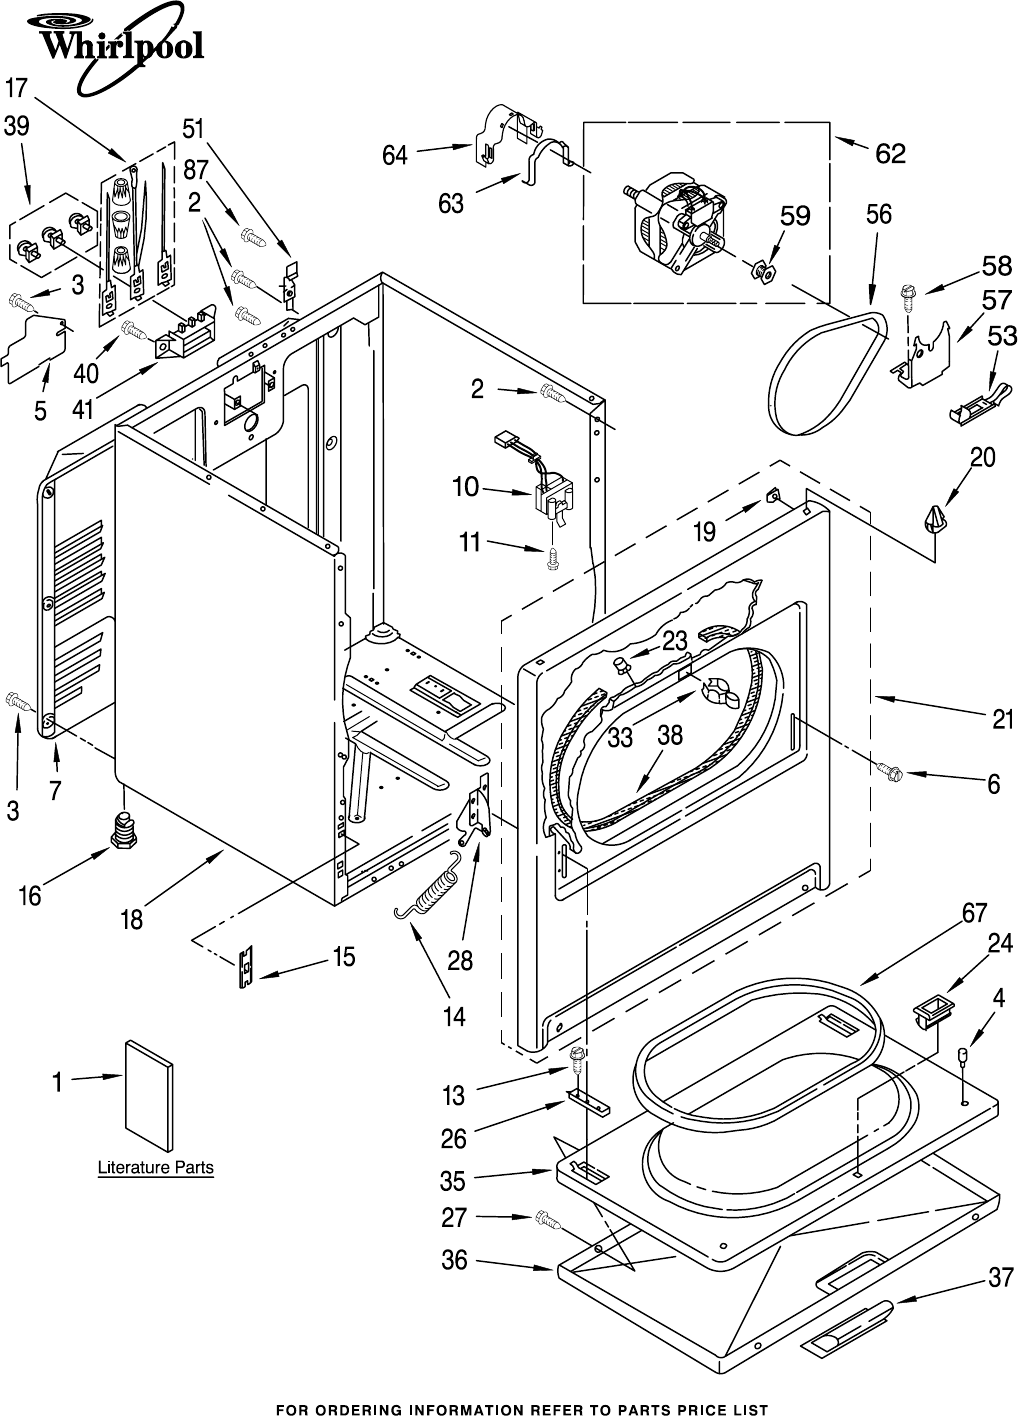 Clothes Dryer Parts ~ Whirlpool clothes dryer ler jq user guide